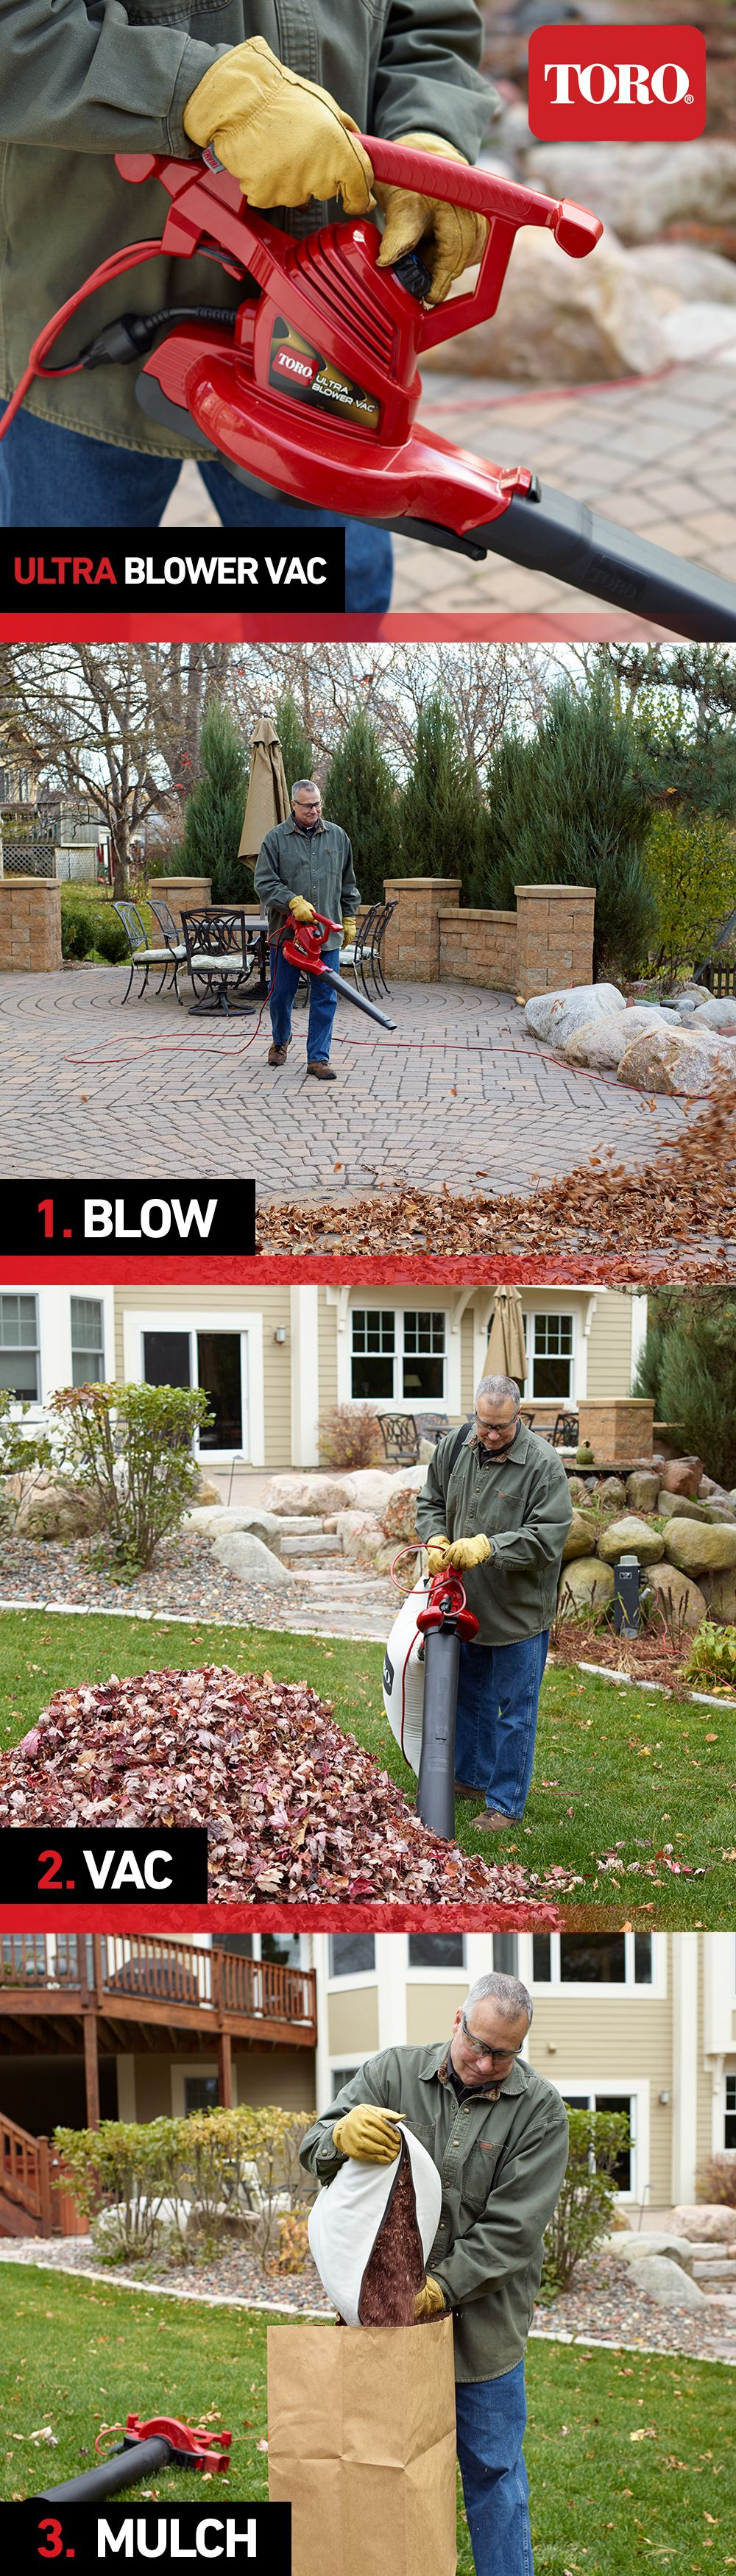 Combining 3 machines in 1, the Toro Ultra Blower Vac will help you simplify your lawn care routine! With a blower, a high-speed vacuum, and a leaf shredder all rolled into one, the Ultra is the helper you need to keep your yard looking great.